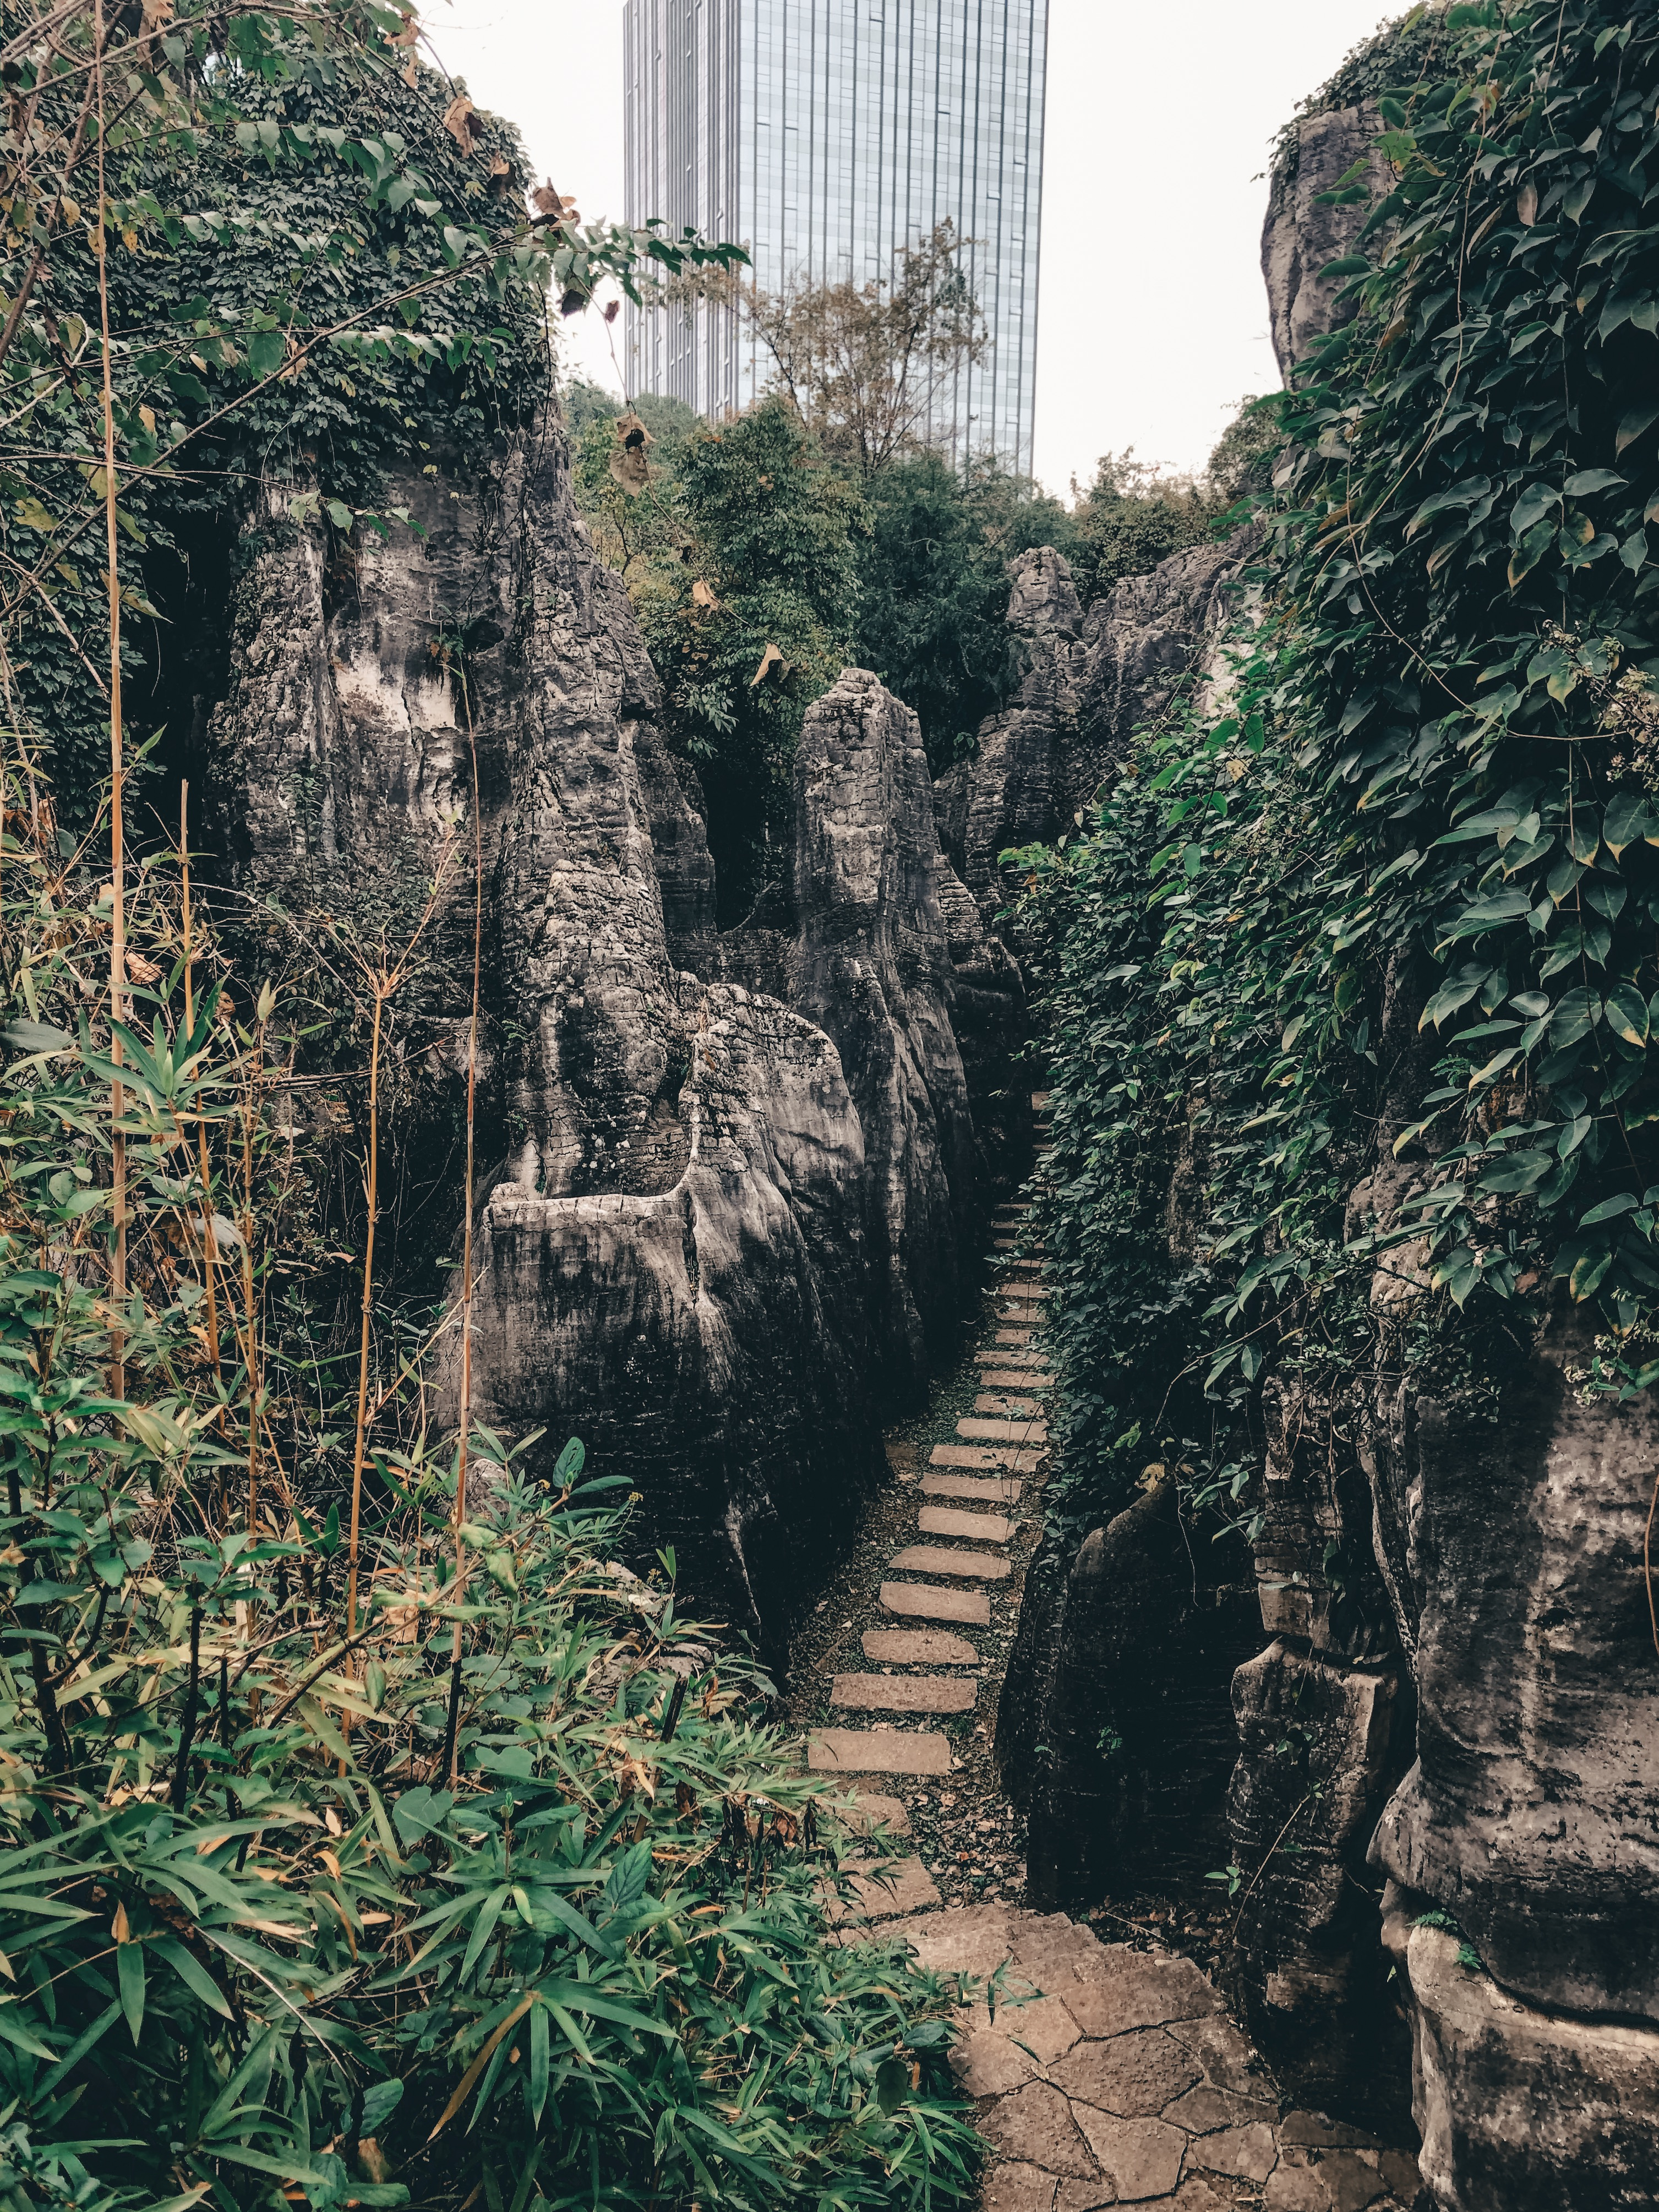 A path marked out in the mix of foliage and karst rock